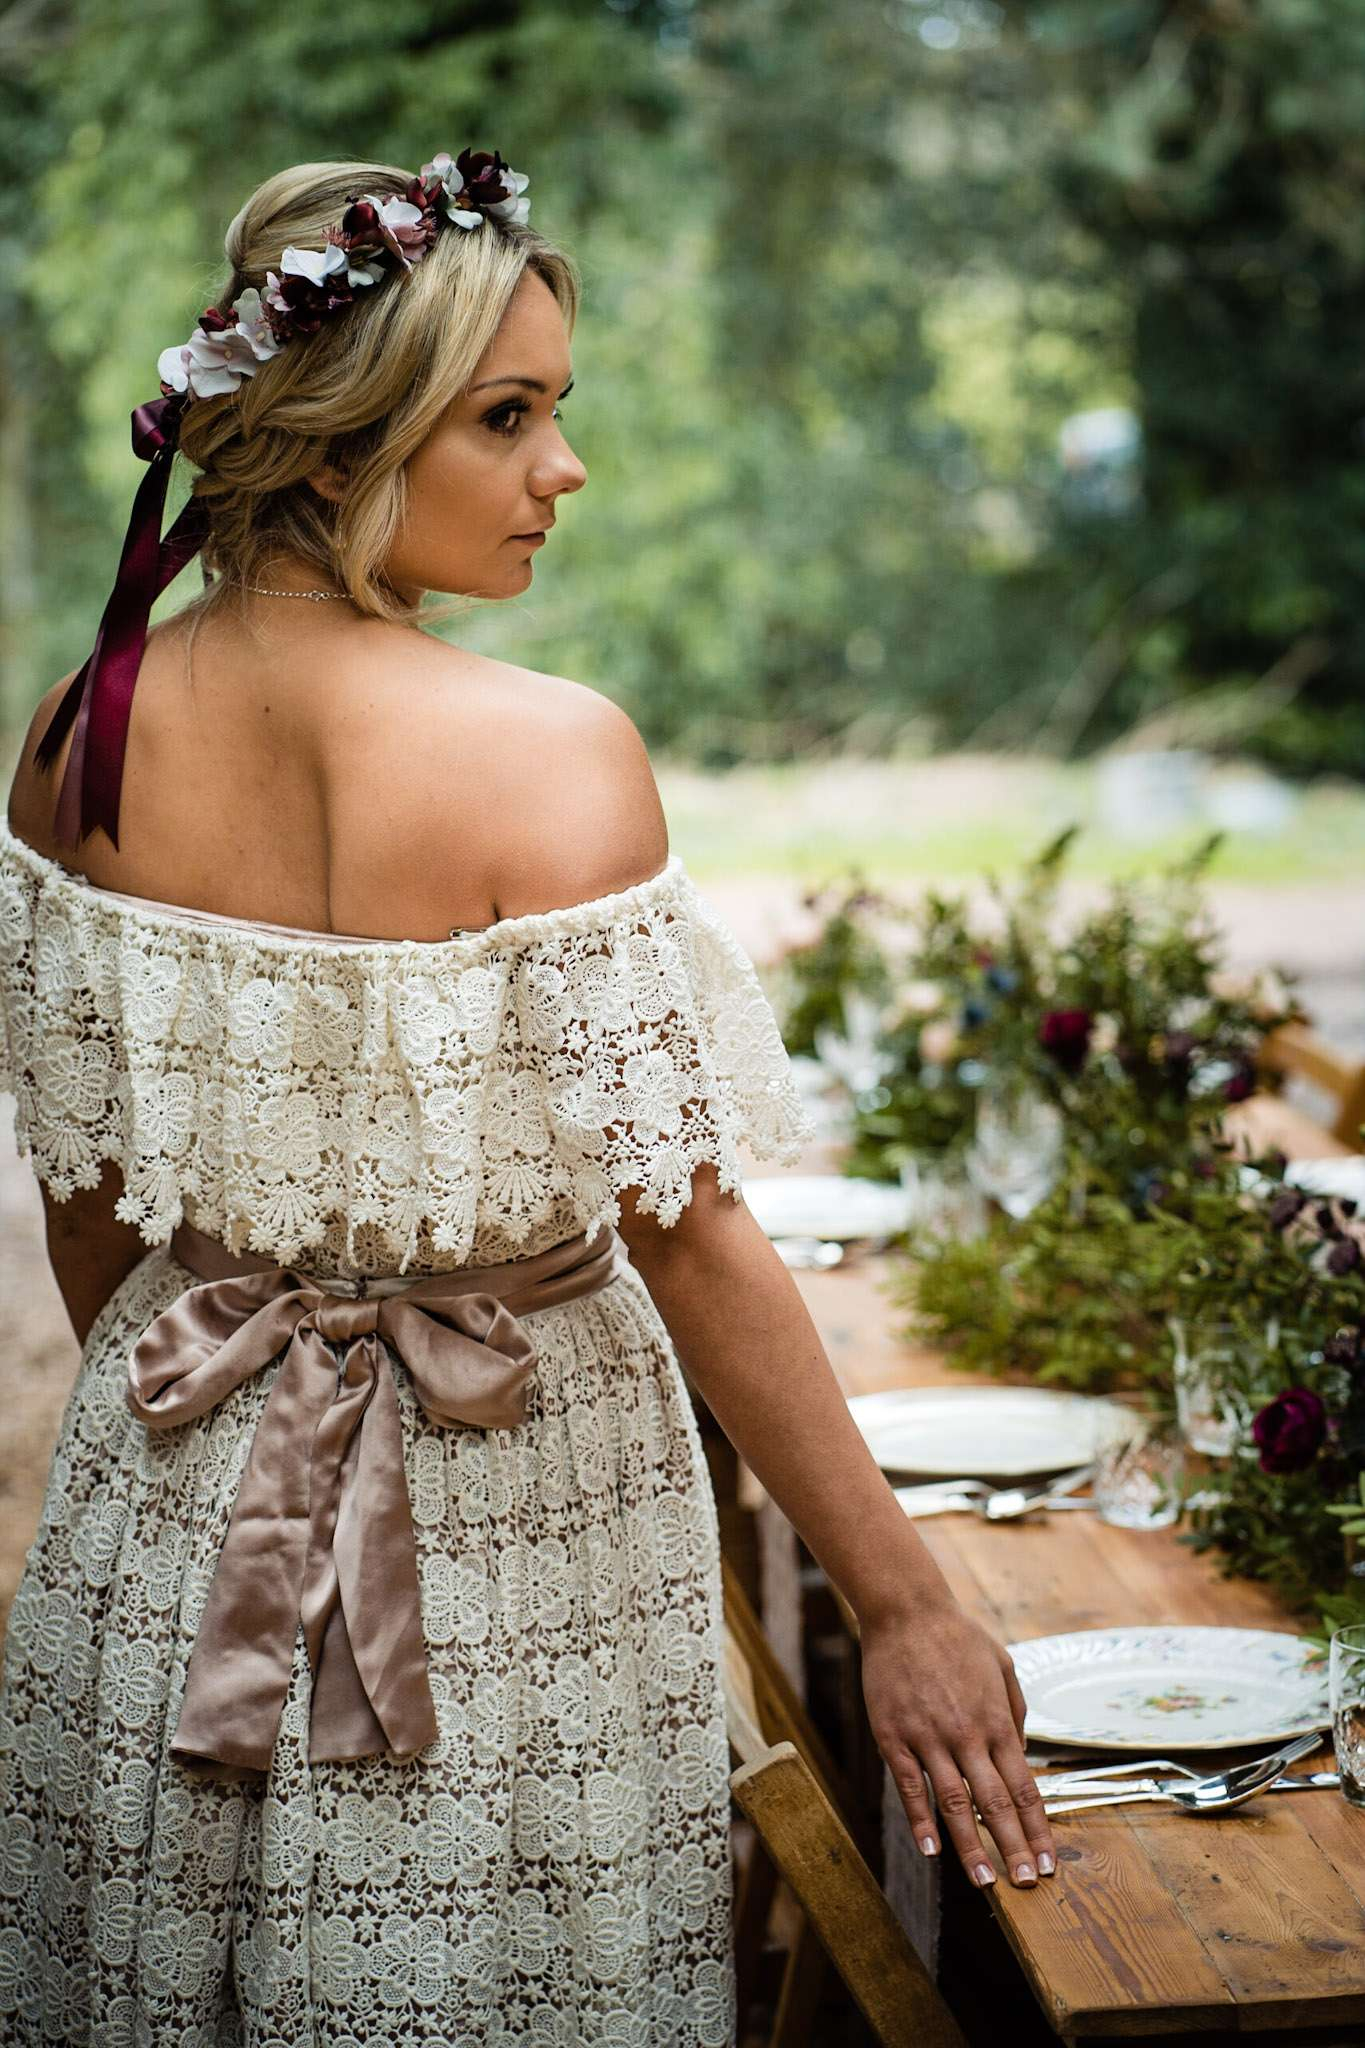 A bride posing at the wedding breakfast table at Patricks Barn, West Sussex